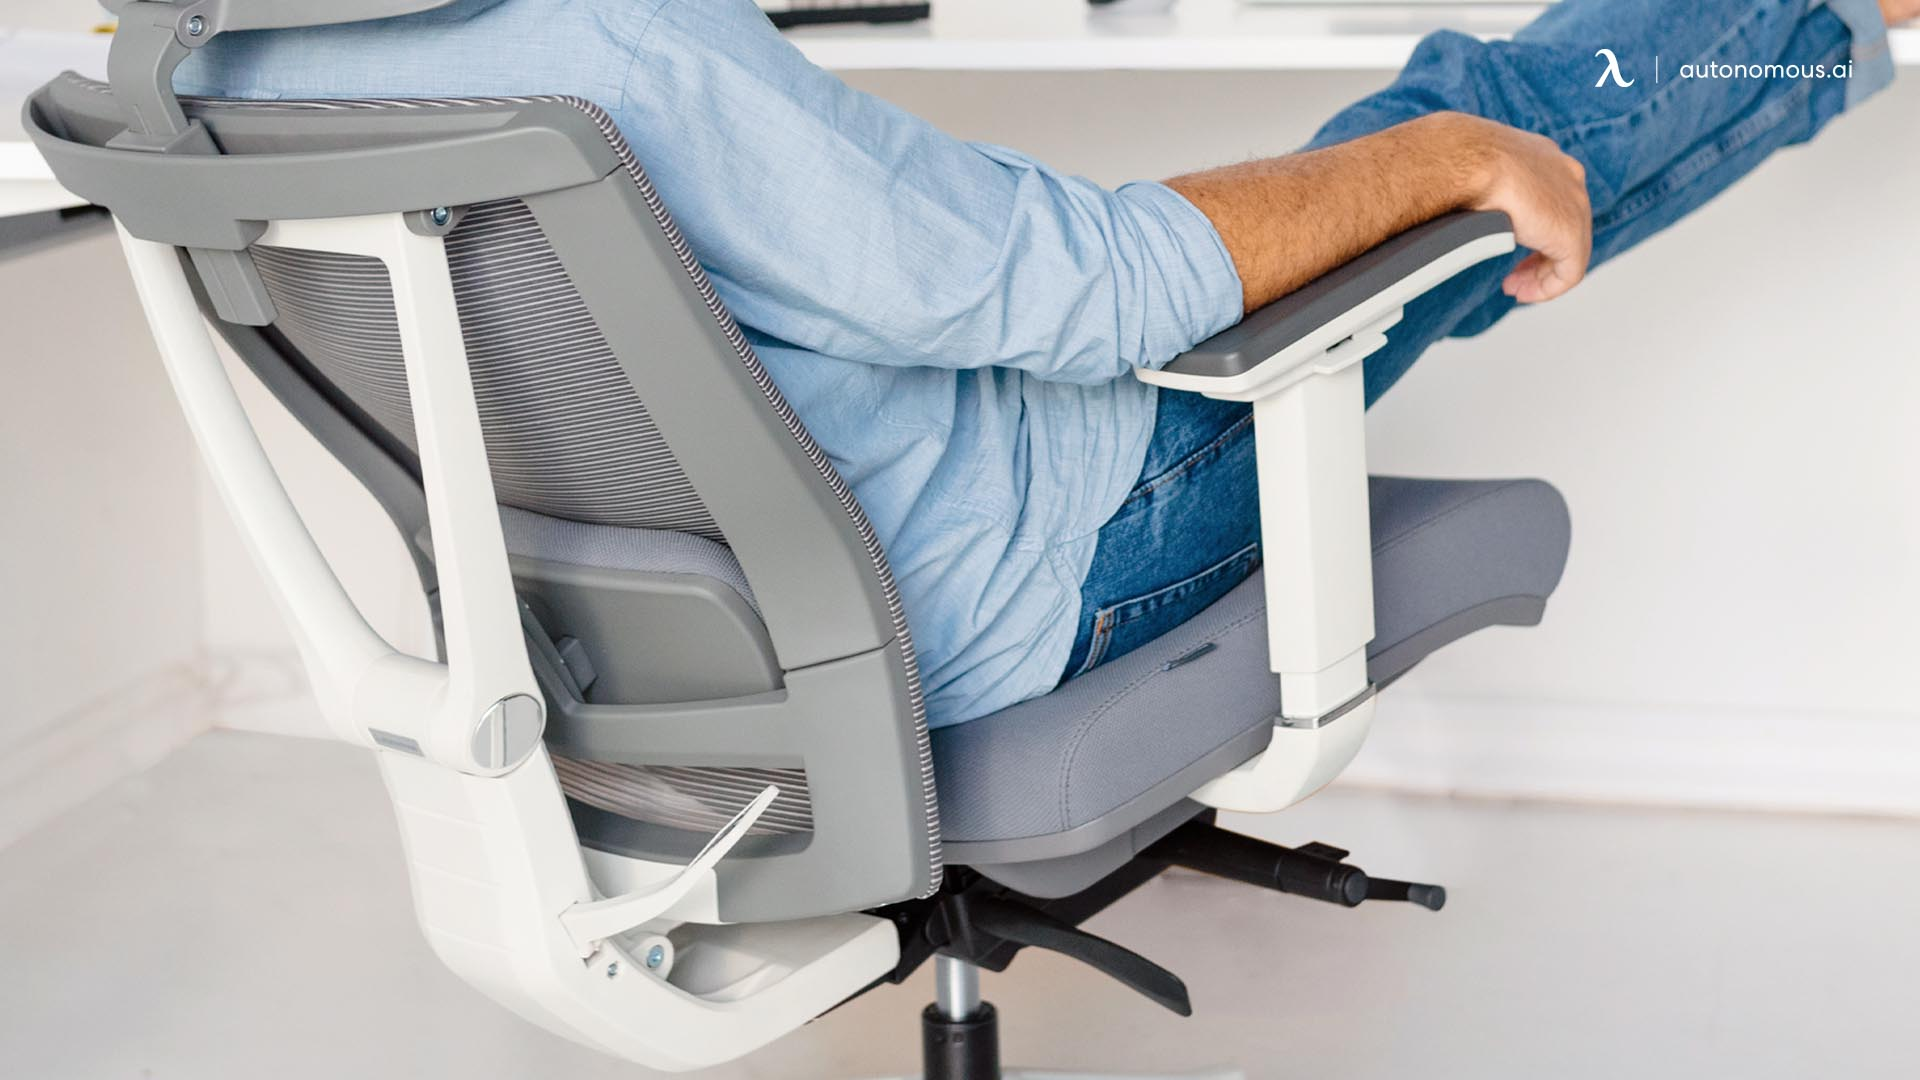 Key features of good seat depth